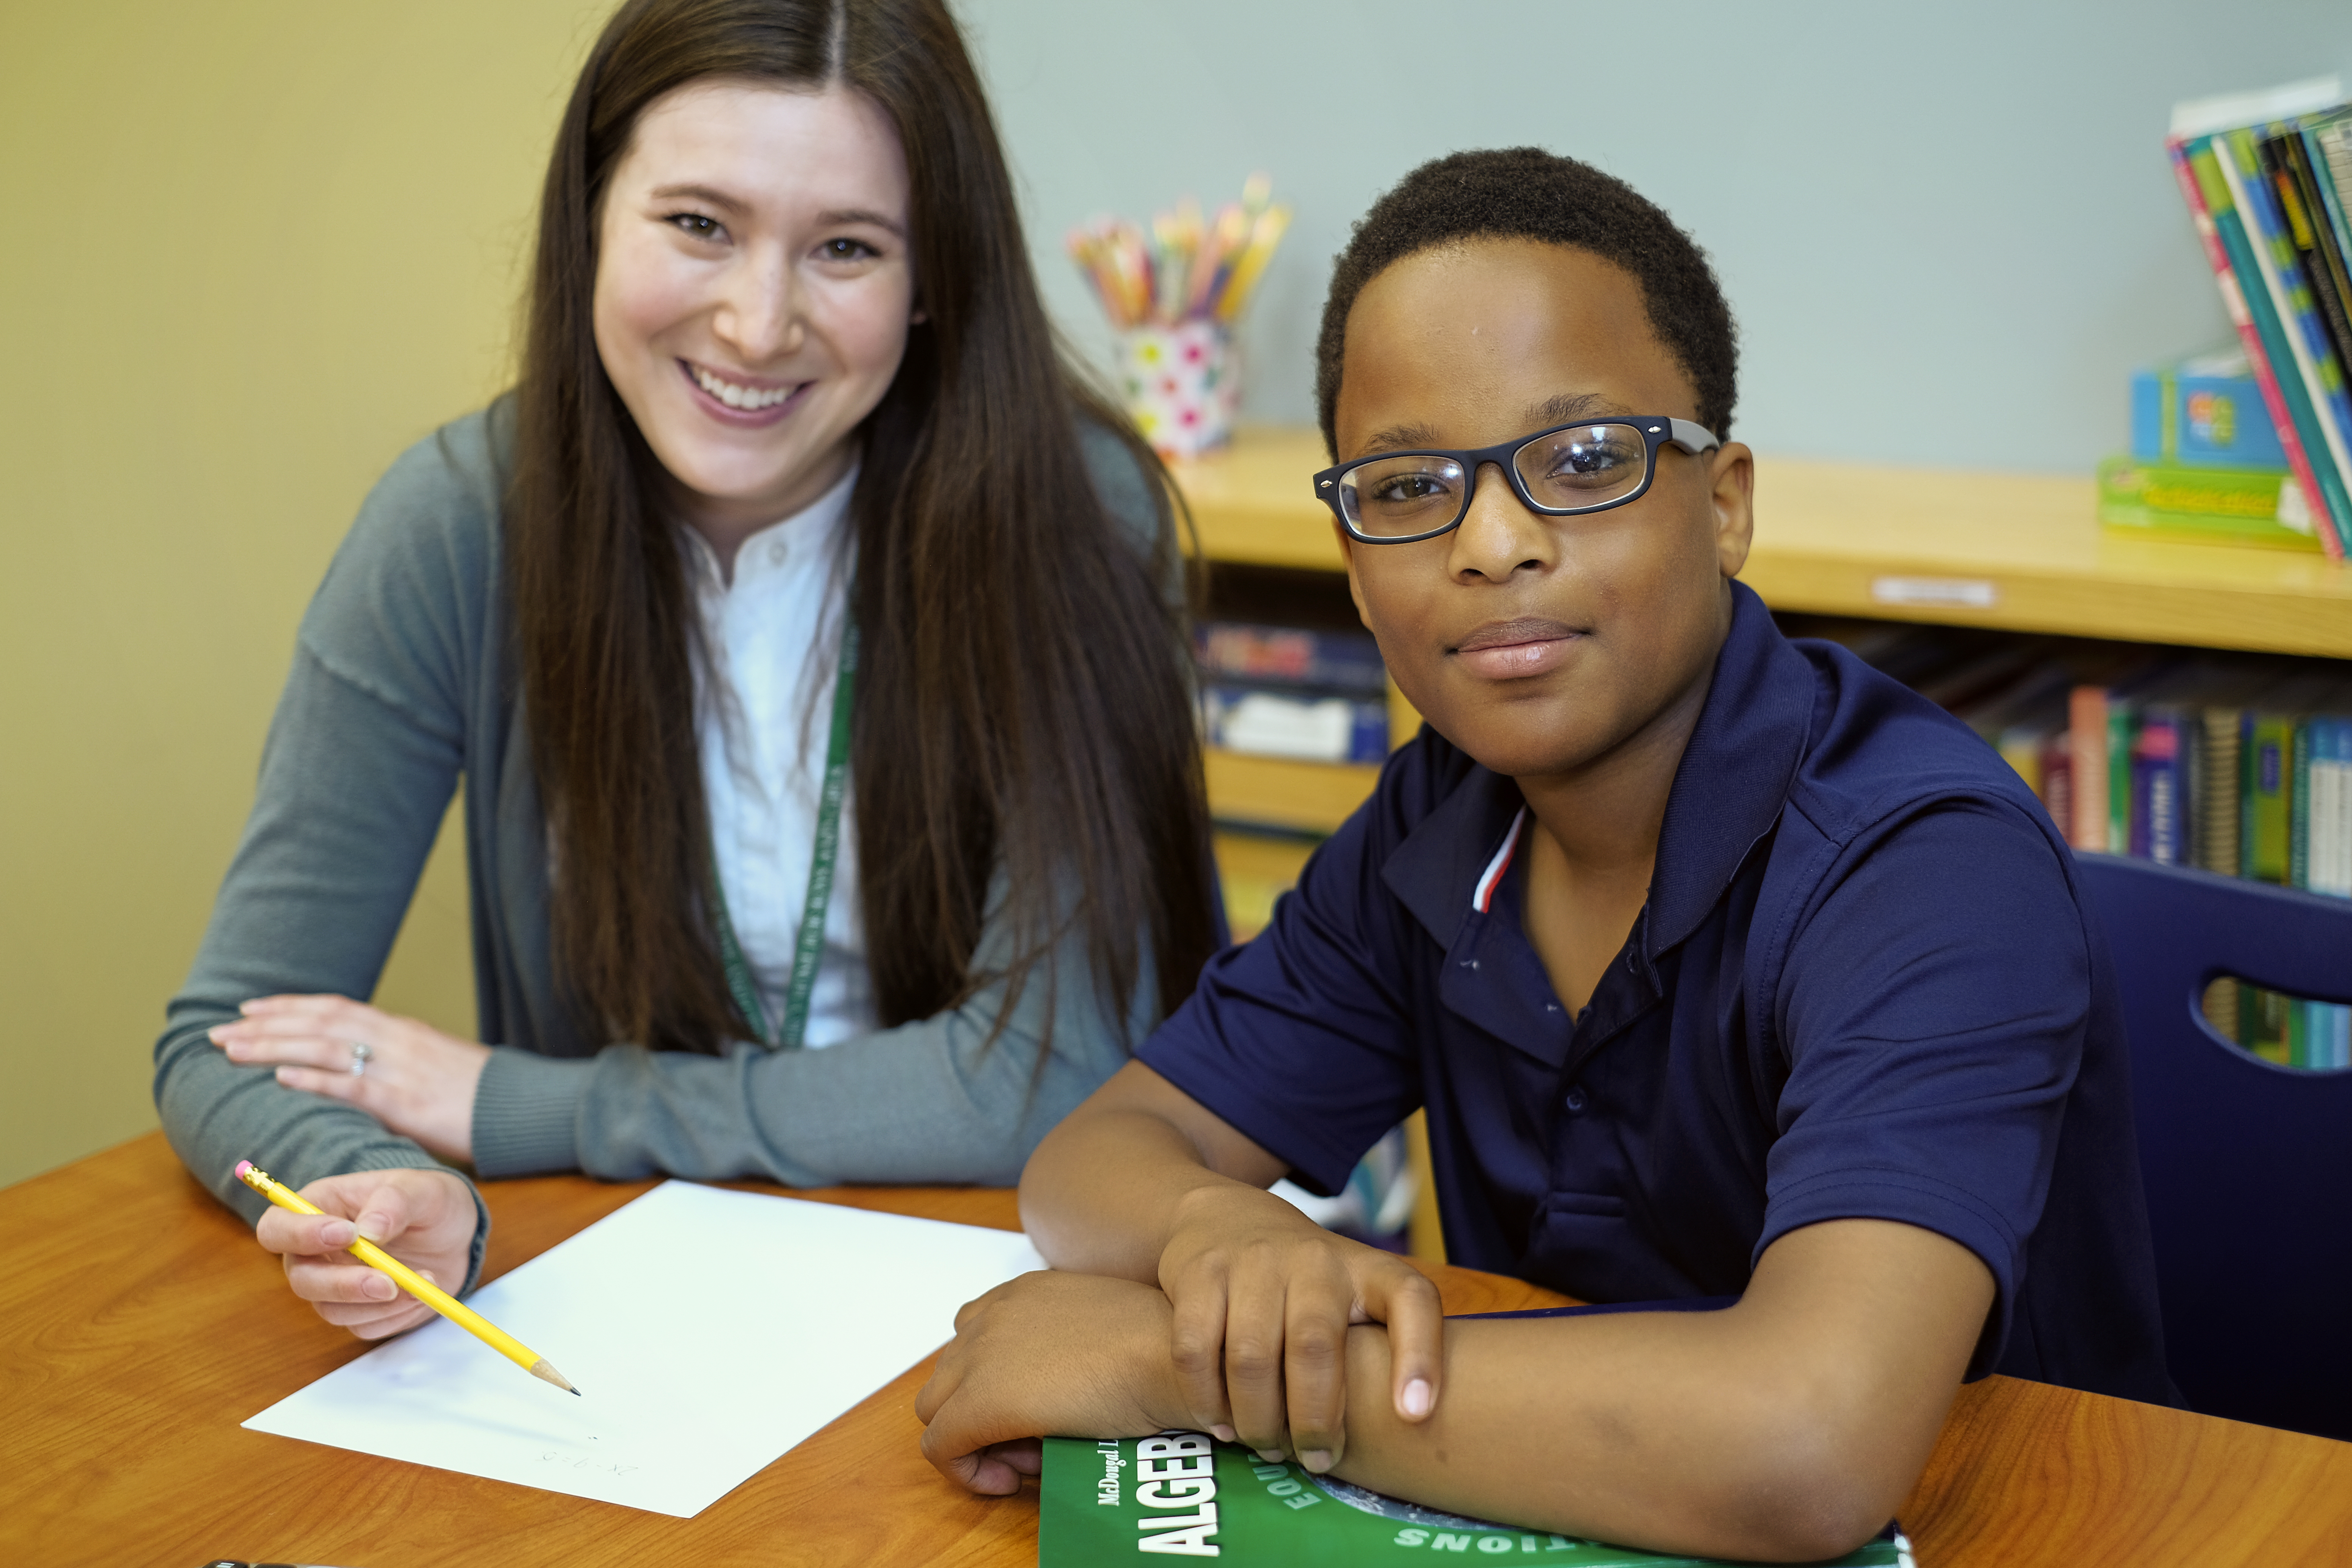 Young boy sitting at table with female tutor